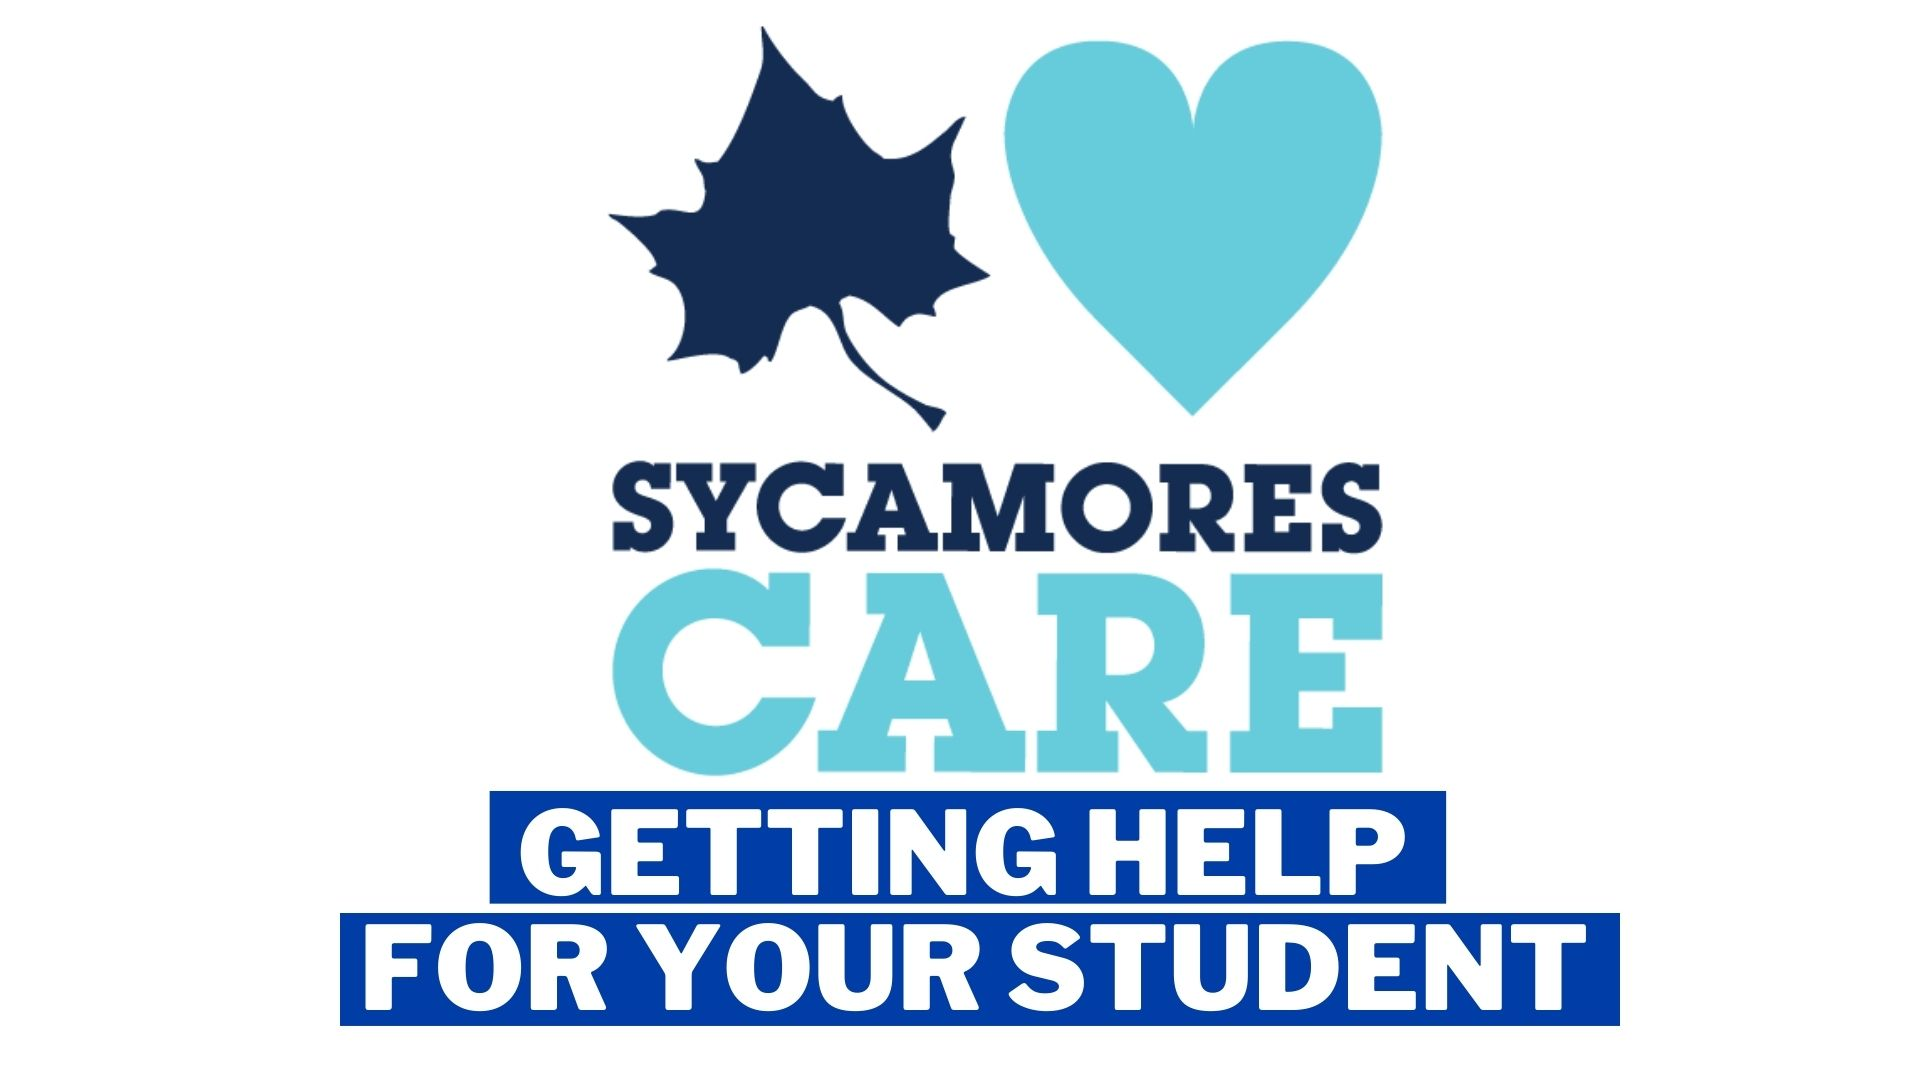 Sycamores Care - Getting Help for Your Student